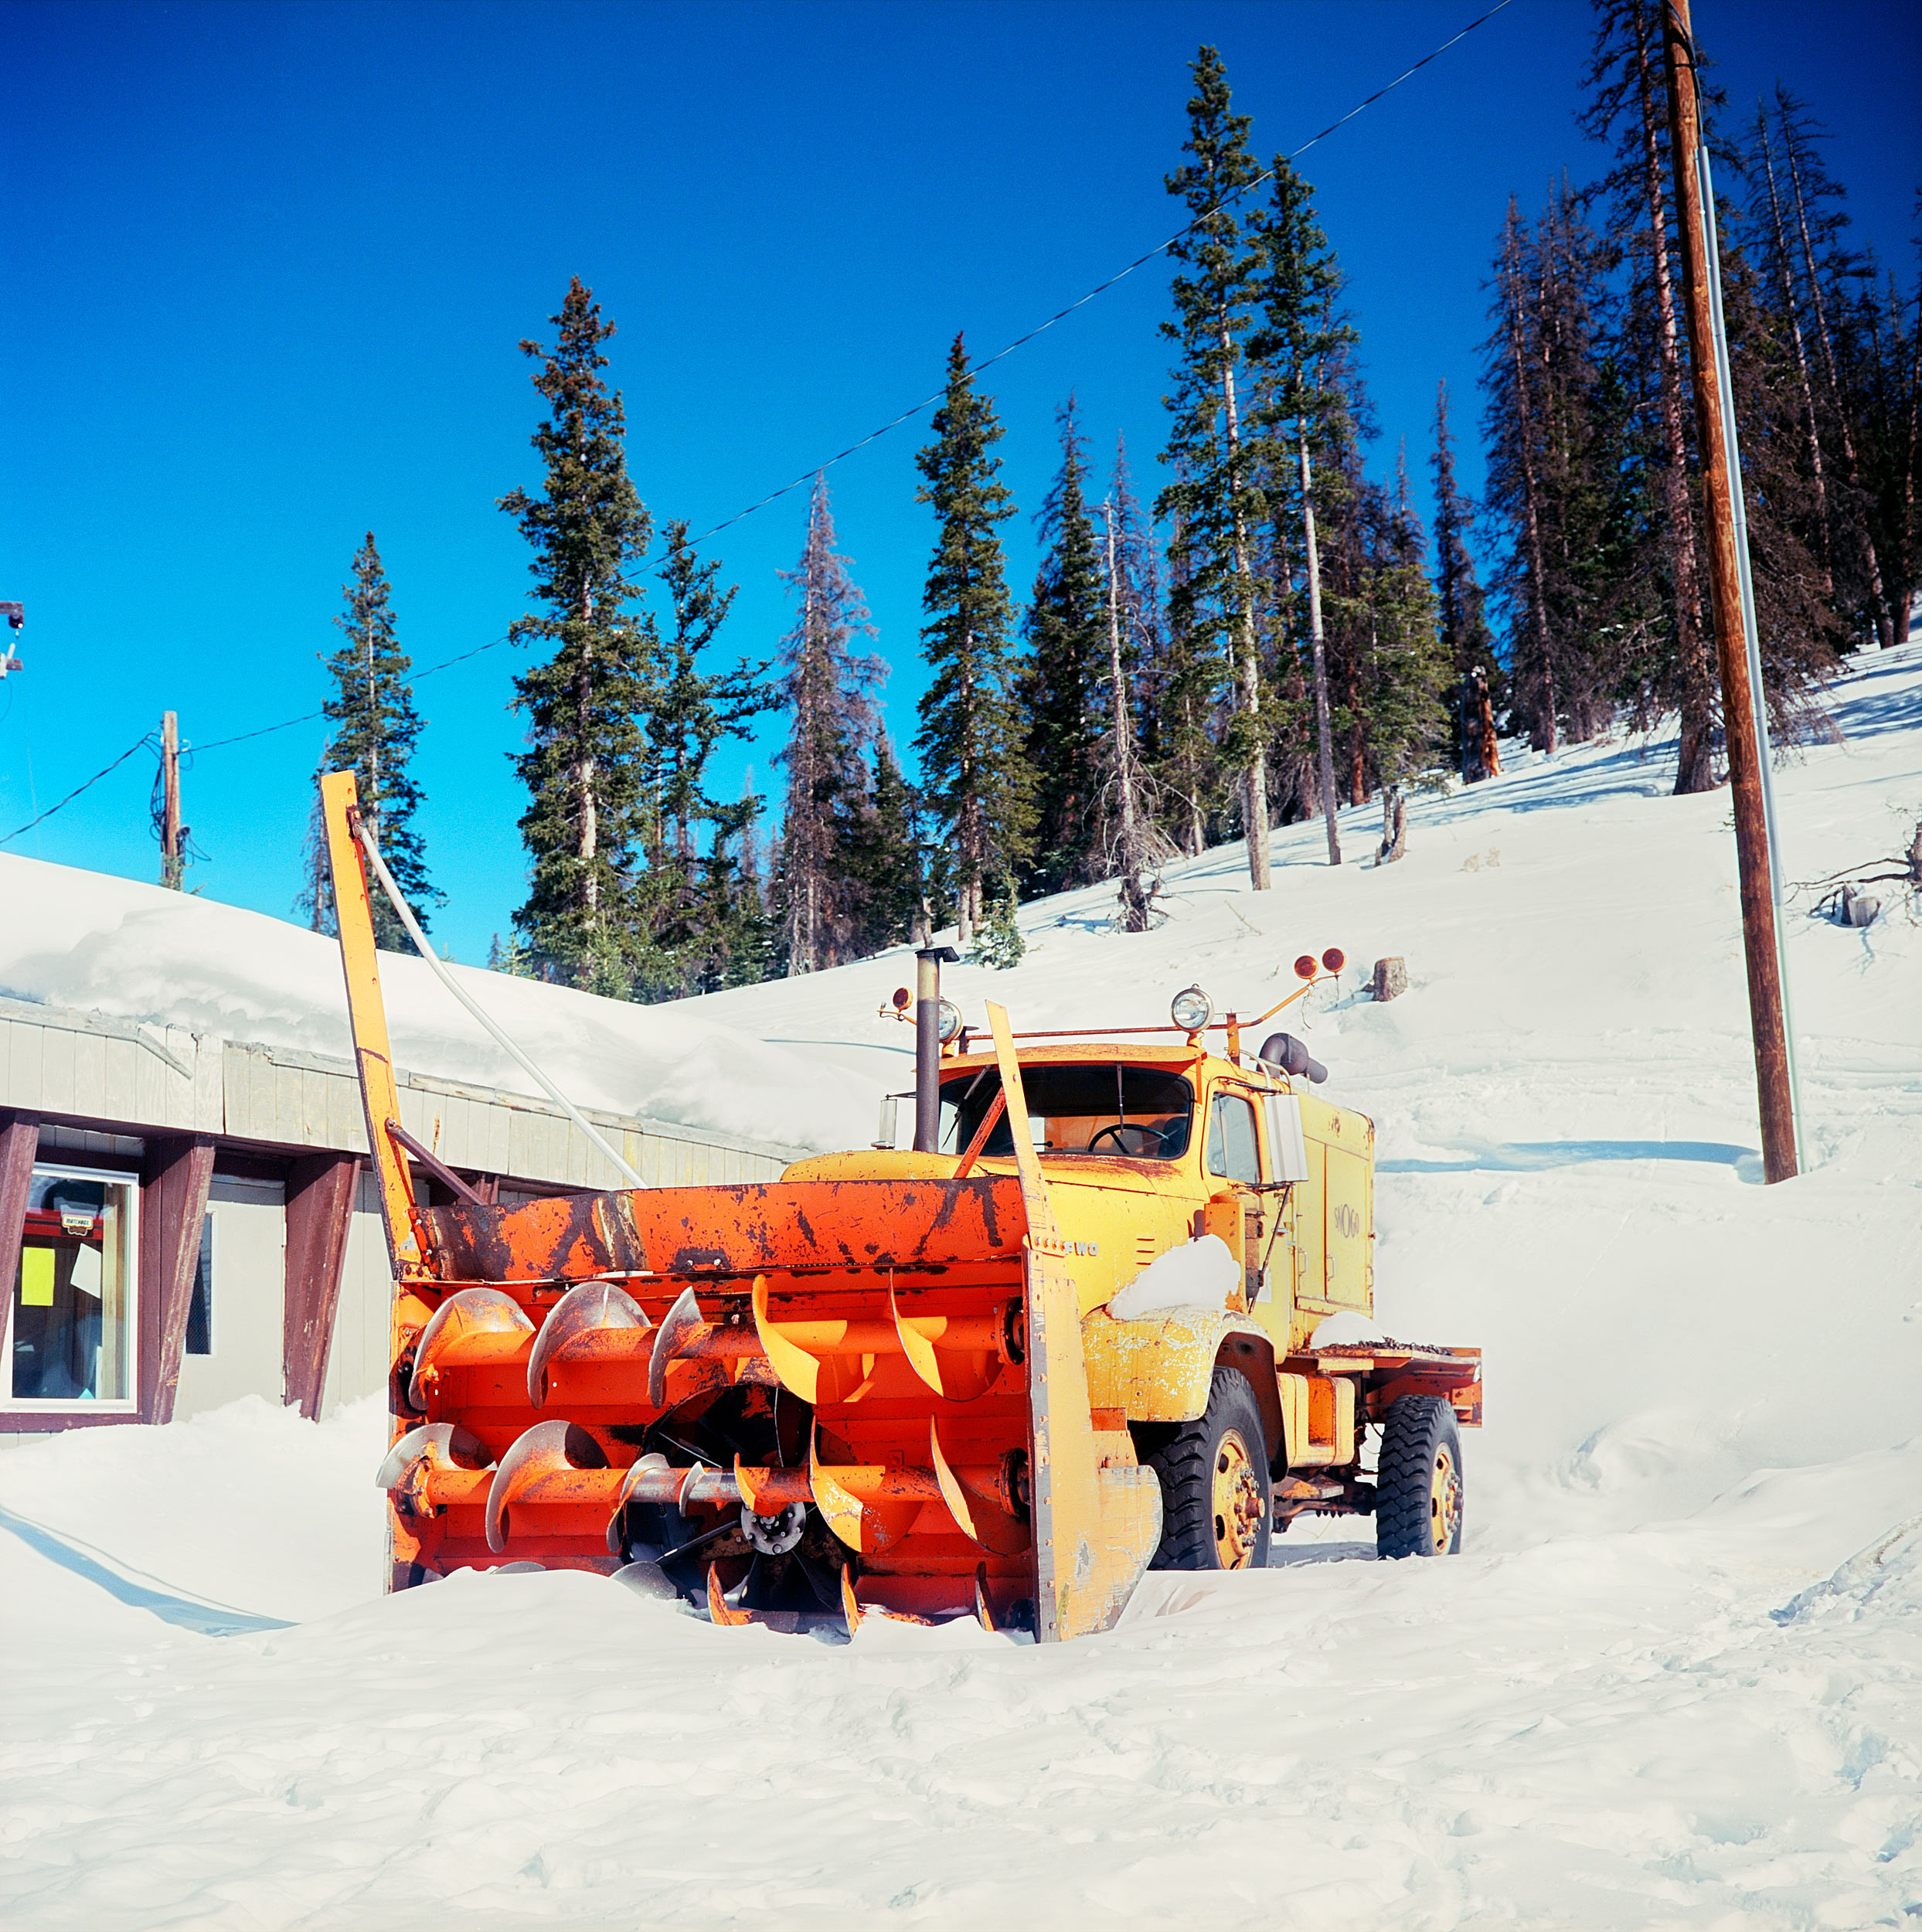 "A giant snow plow rests at Monarch Pass in Colorado. The pass sits on the continental divide at an elevation of 11,312 feet above sea level. I had great weather during the road trip and going through the pass in the middle of winter was a breeze – no snow plow required! Seeing this bright orange snow plow reminded me of a funny story my wife told me about learning to drive a stick-shift as a teenager. My mother-in-law told her she'd need to know how just in case she ever needed to drive a Snow-Cat. It seems hilarious because my wife is from St. Louis. But I suppose that since ""The Shining"" was still relatively fresh in people's minds in those days, we all probably should have learned how to drive a Snow-Cat."